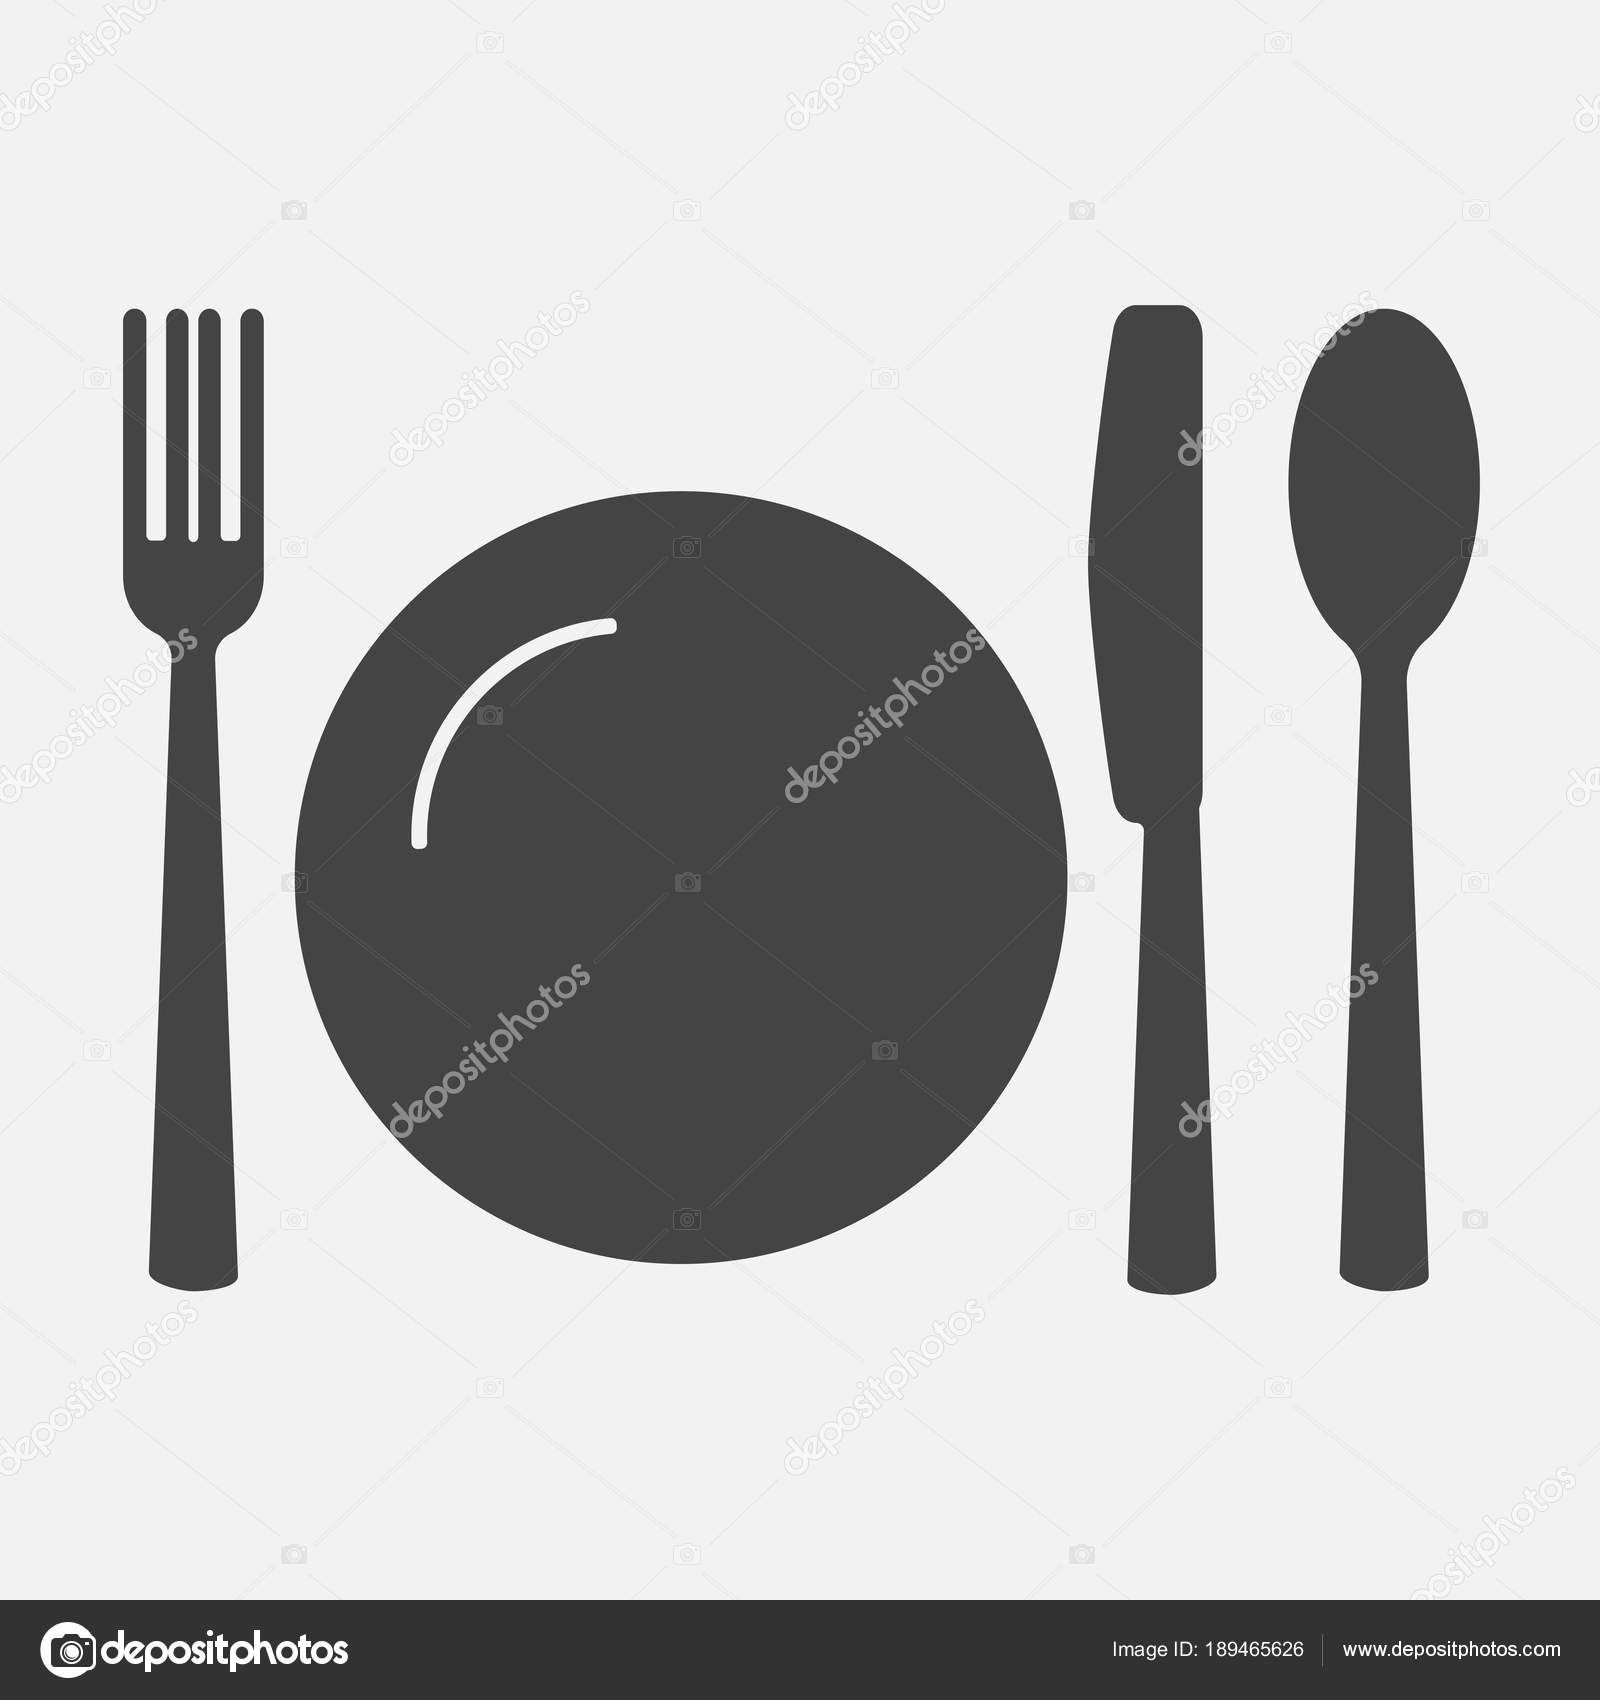 Knife fork spoon and plate. Cutlery. Table setting. Vector icon illustration \u2014 Vector by oksanaoo  sc 1 st  Depositphotos & Knife fork spoon and plate. Cutlery. Table setting. Vector ico ...